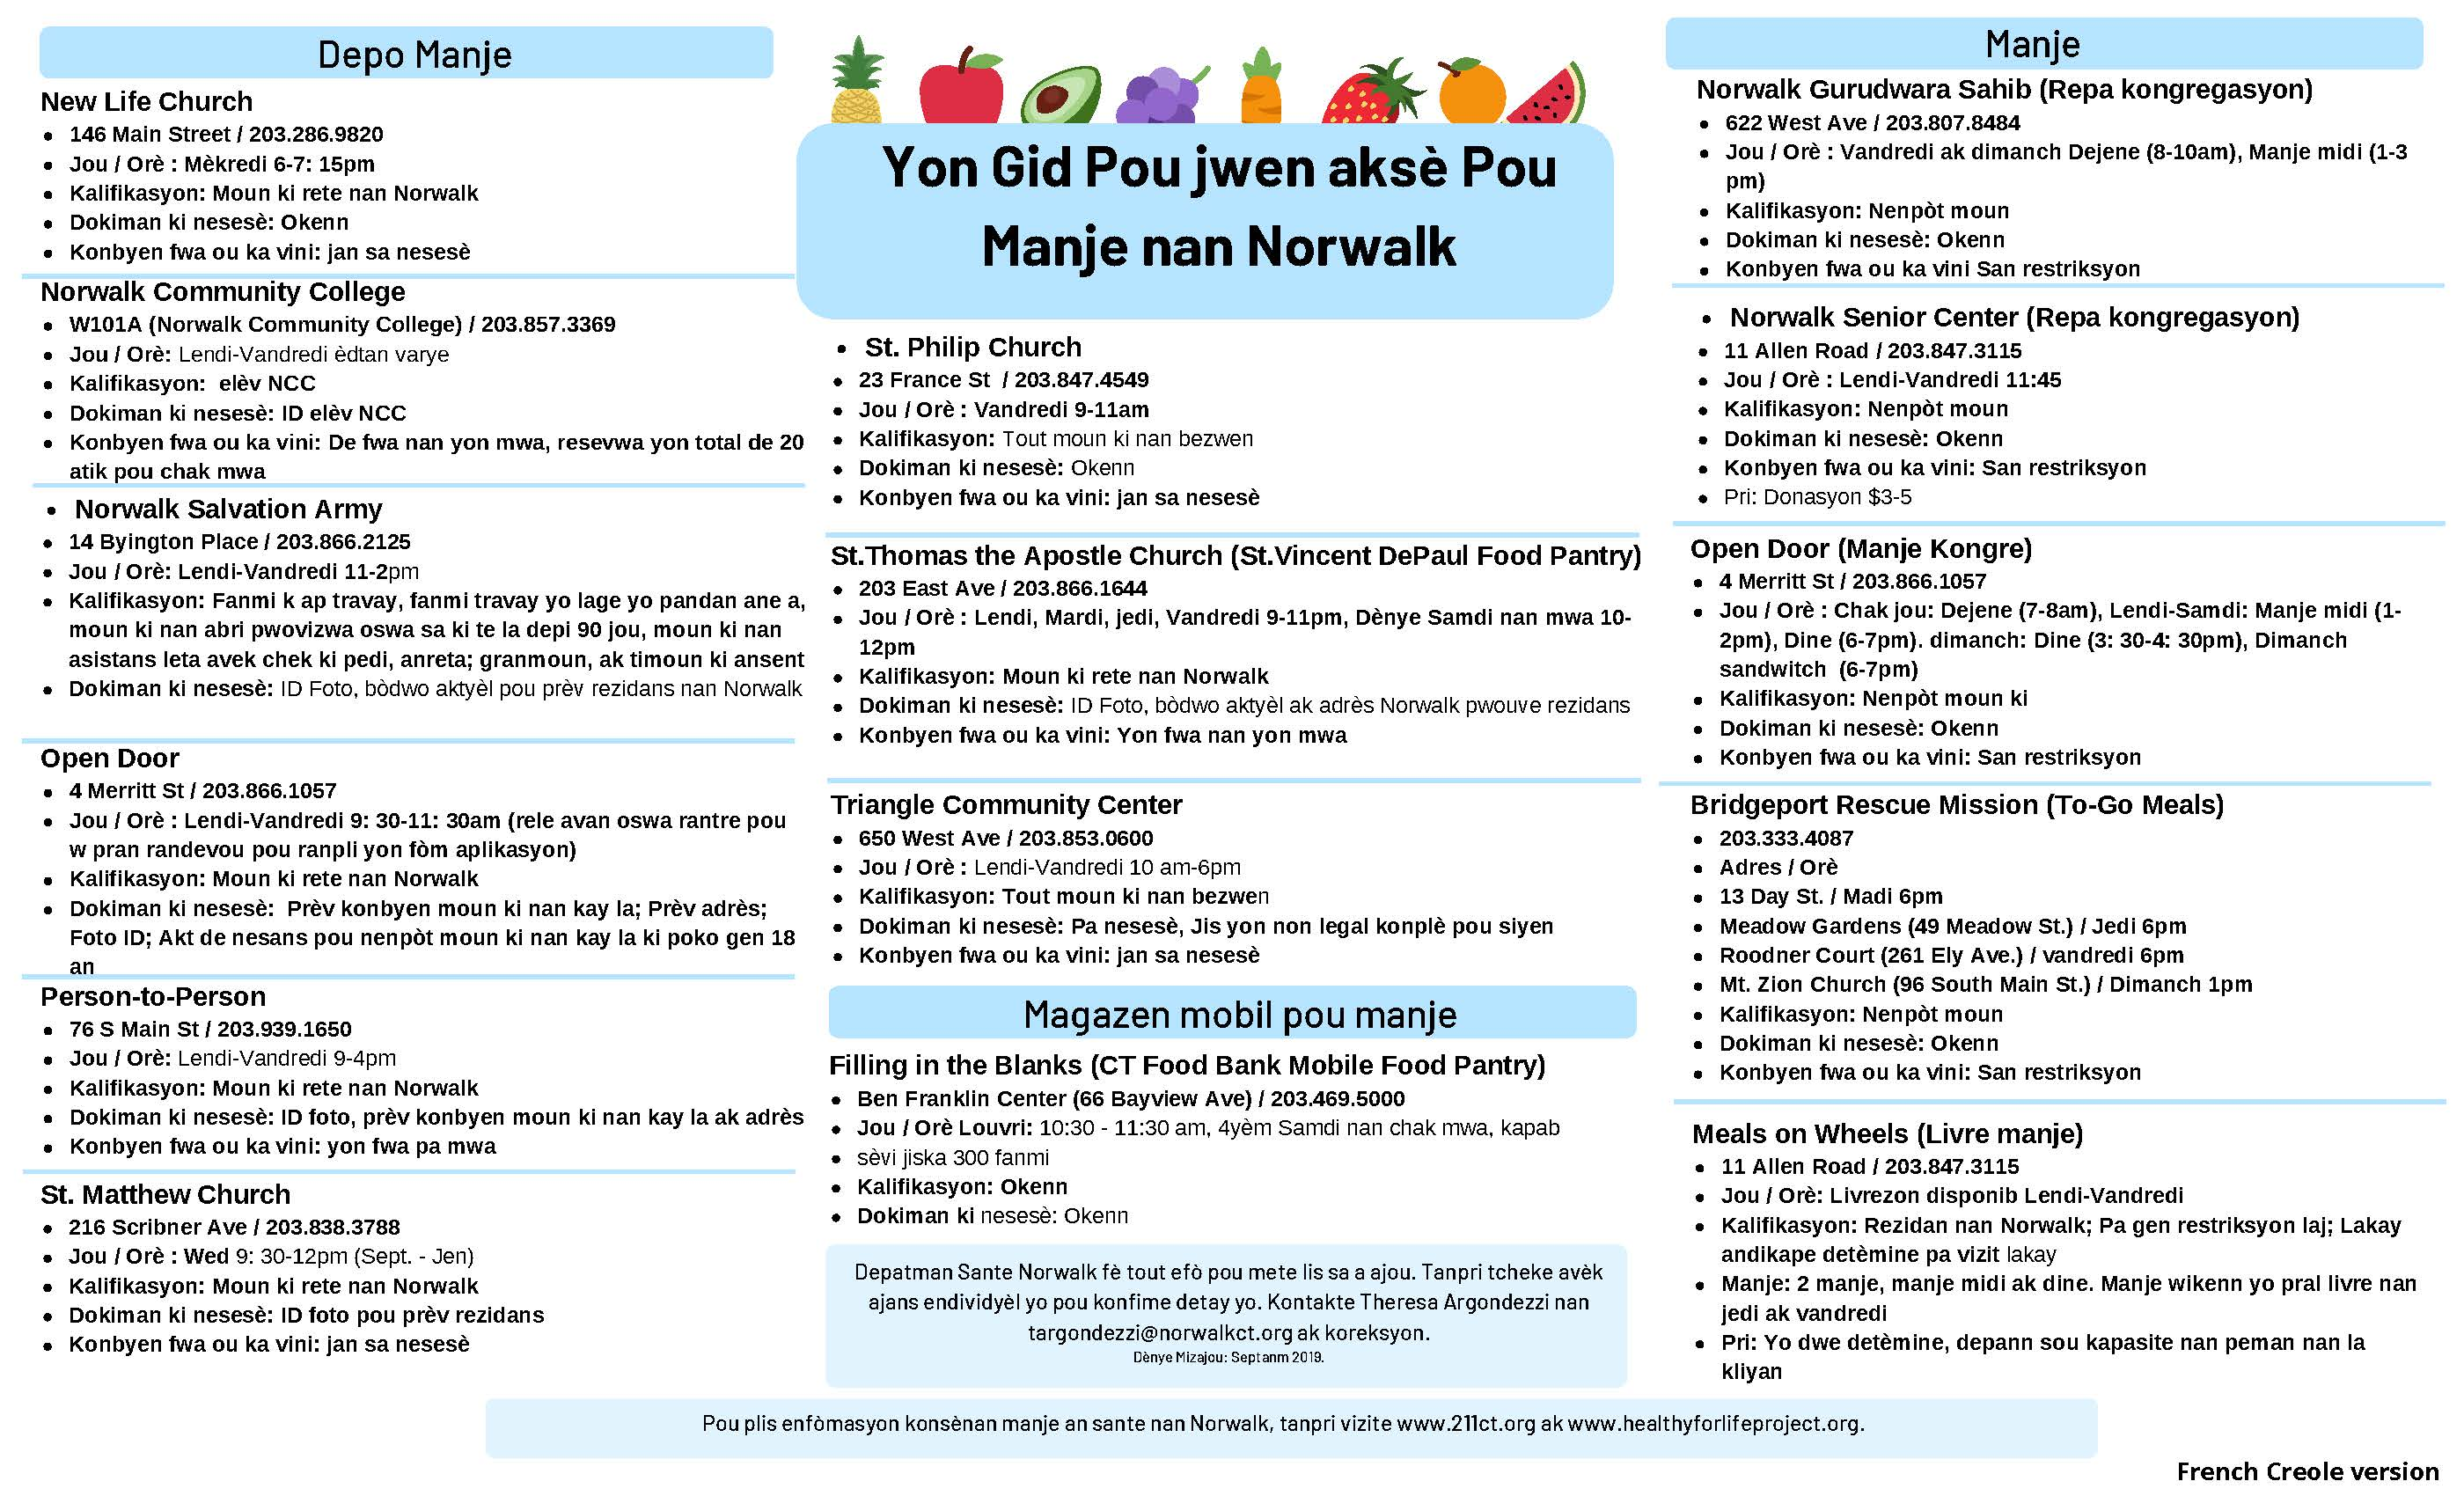 A Guide to Accessing Food in Norwalk  (French Creole)